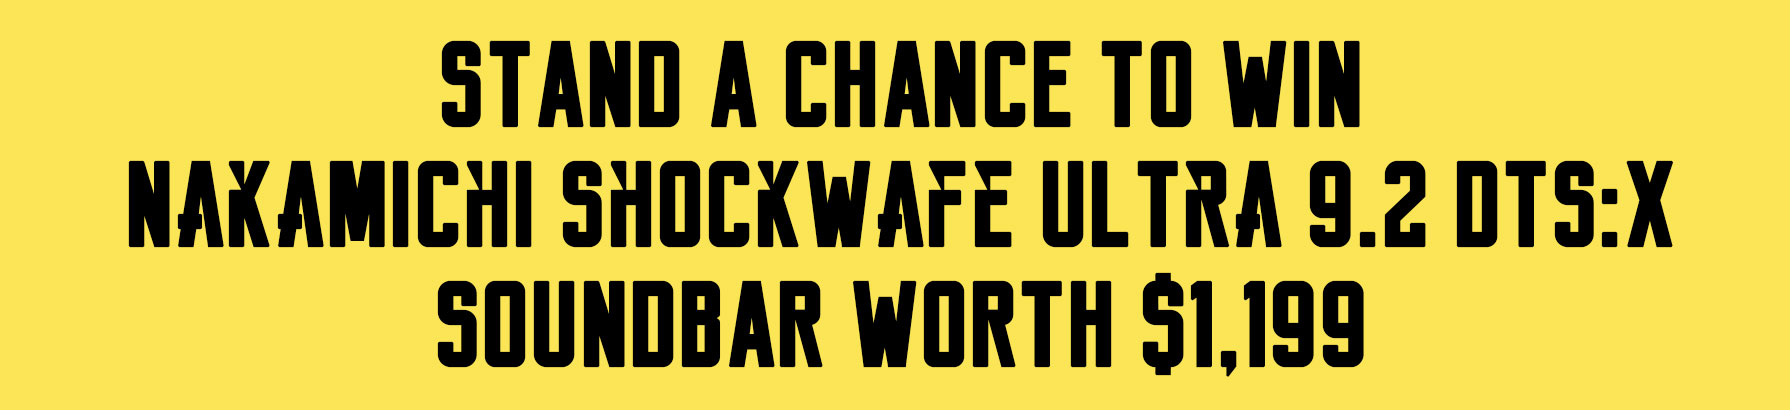 Stand a chance to win Shockwafe Ultra 9.2 Sound bar worth $1199